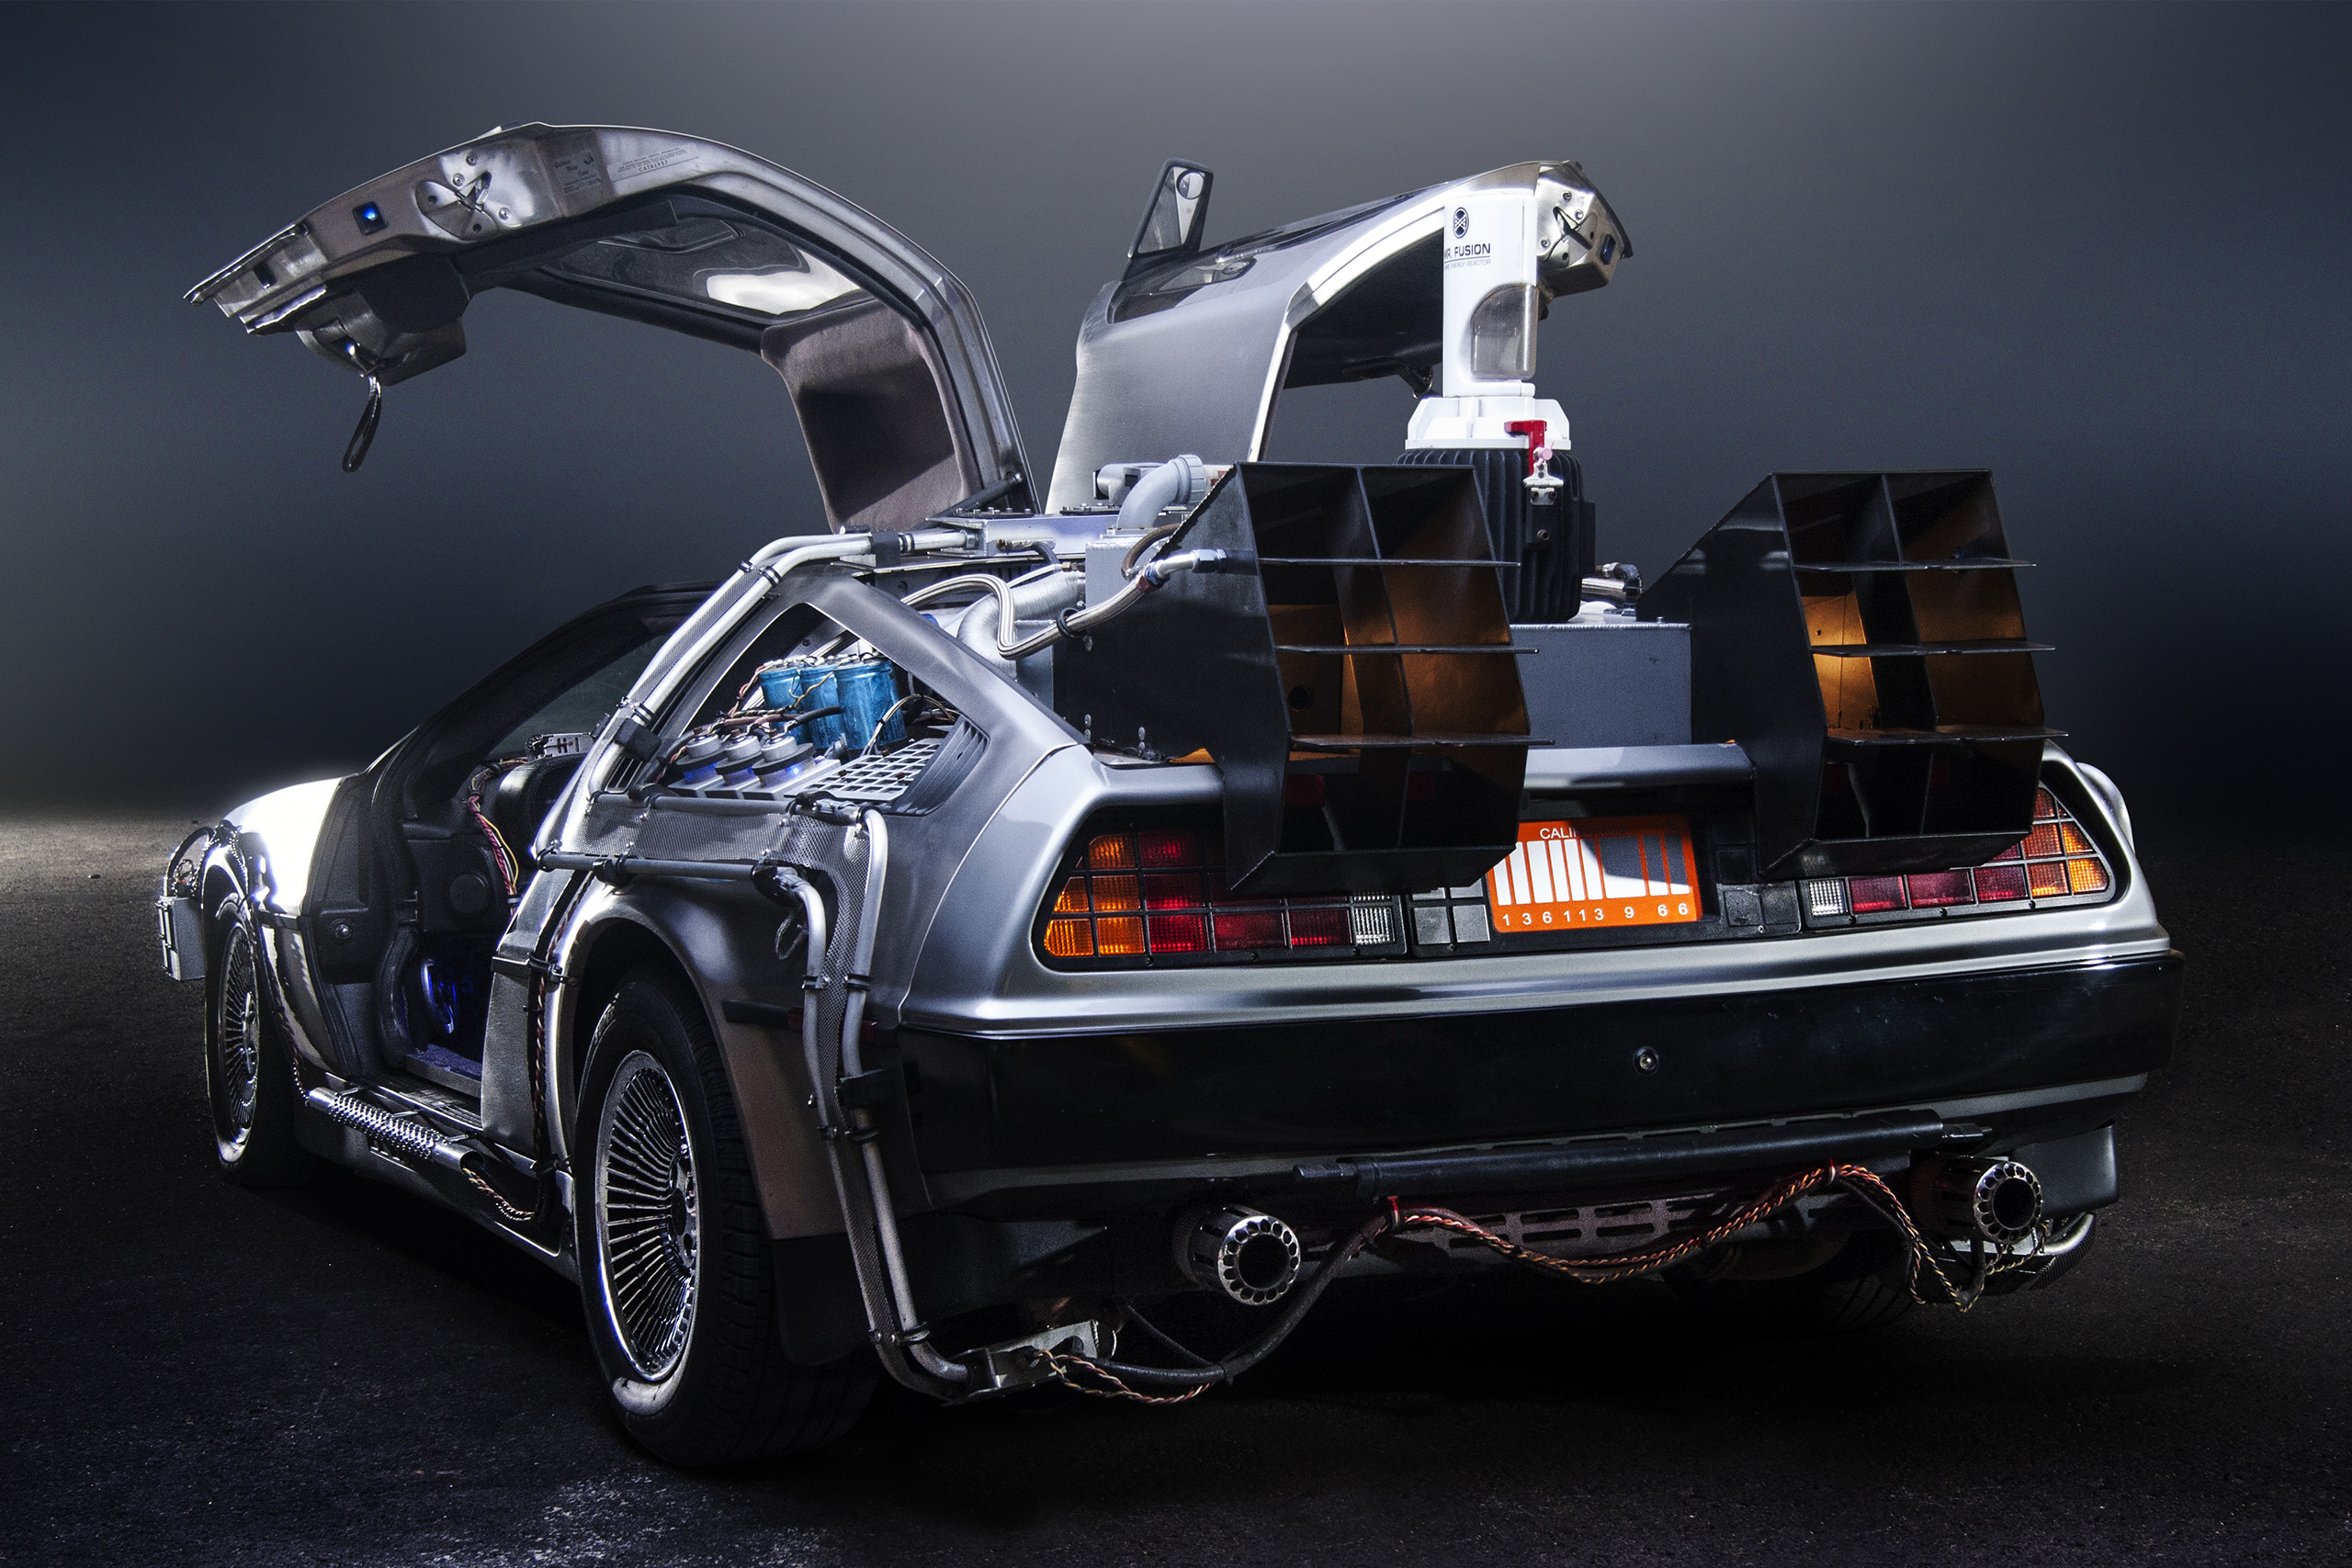 Back To The Future 1982 DeLorean DMC-12